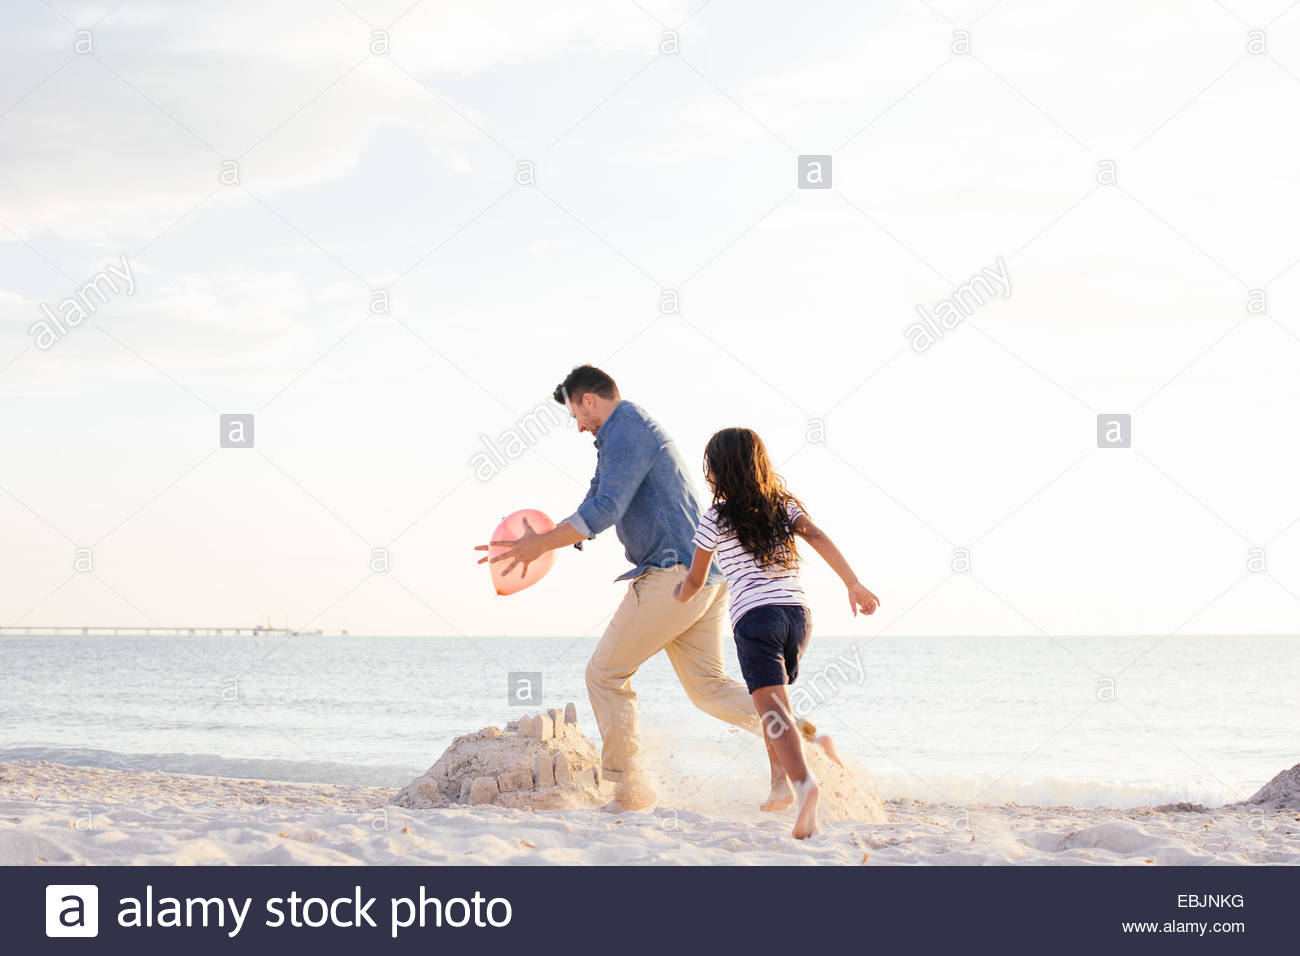 Girl chasing father for balloon on beach, Tuscany, Italy - Stock Image